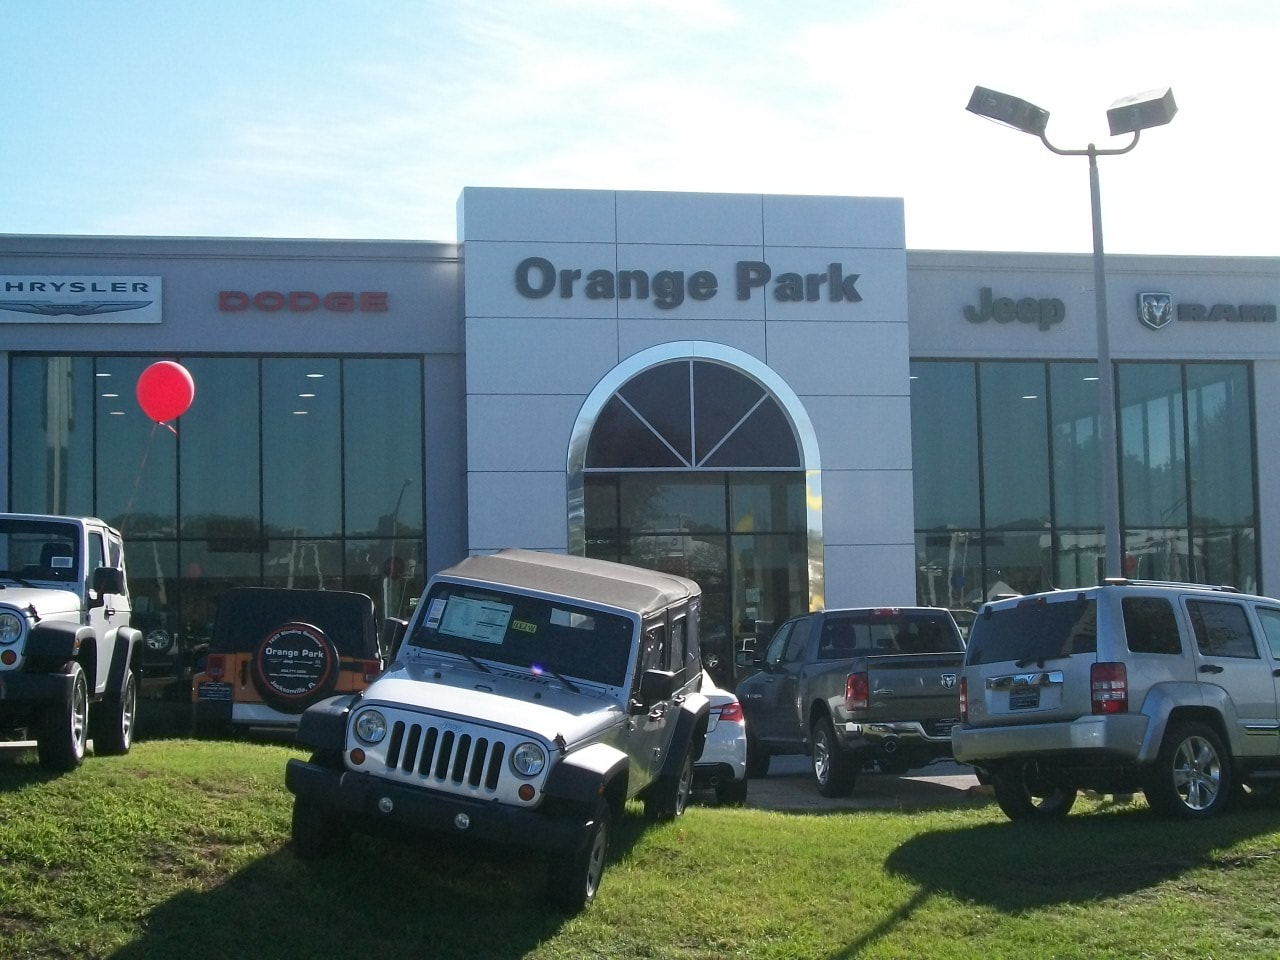 Orange Park Chrysler Dodge Jeep RAM